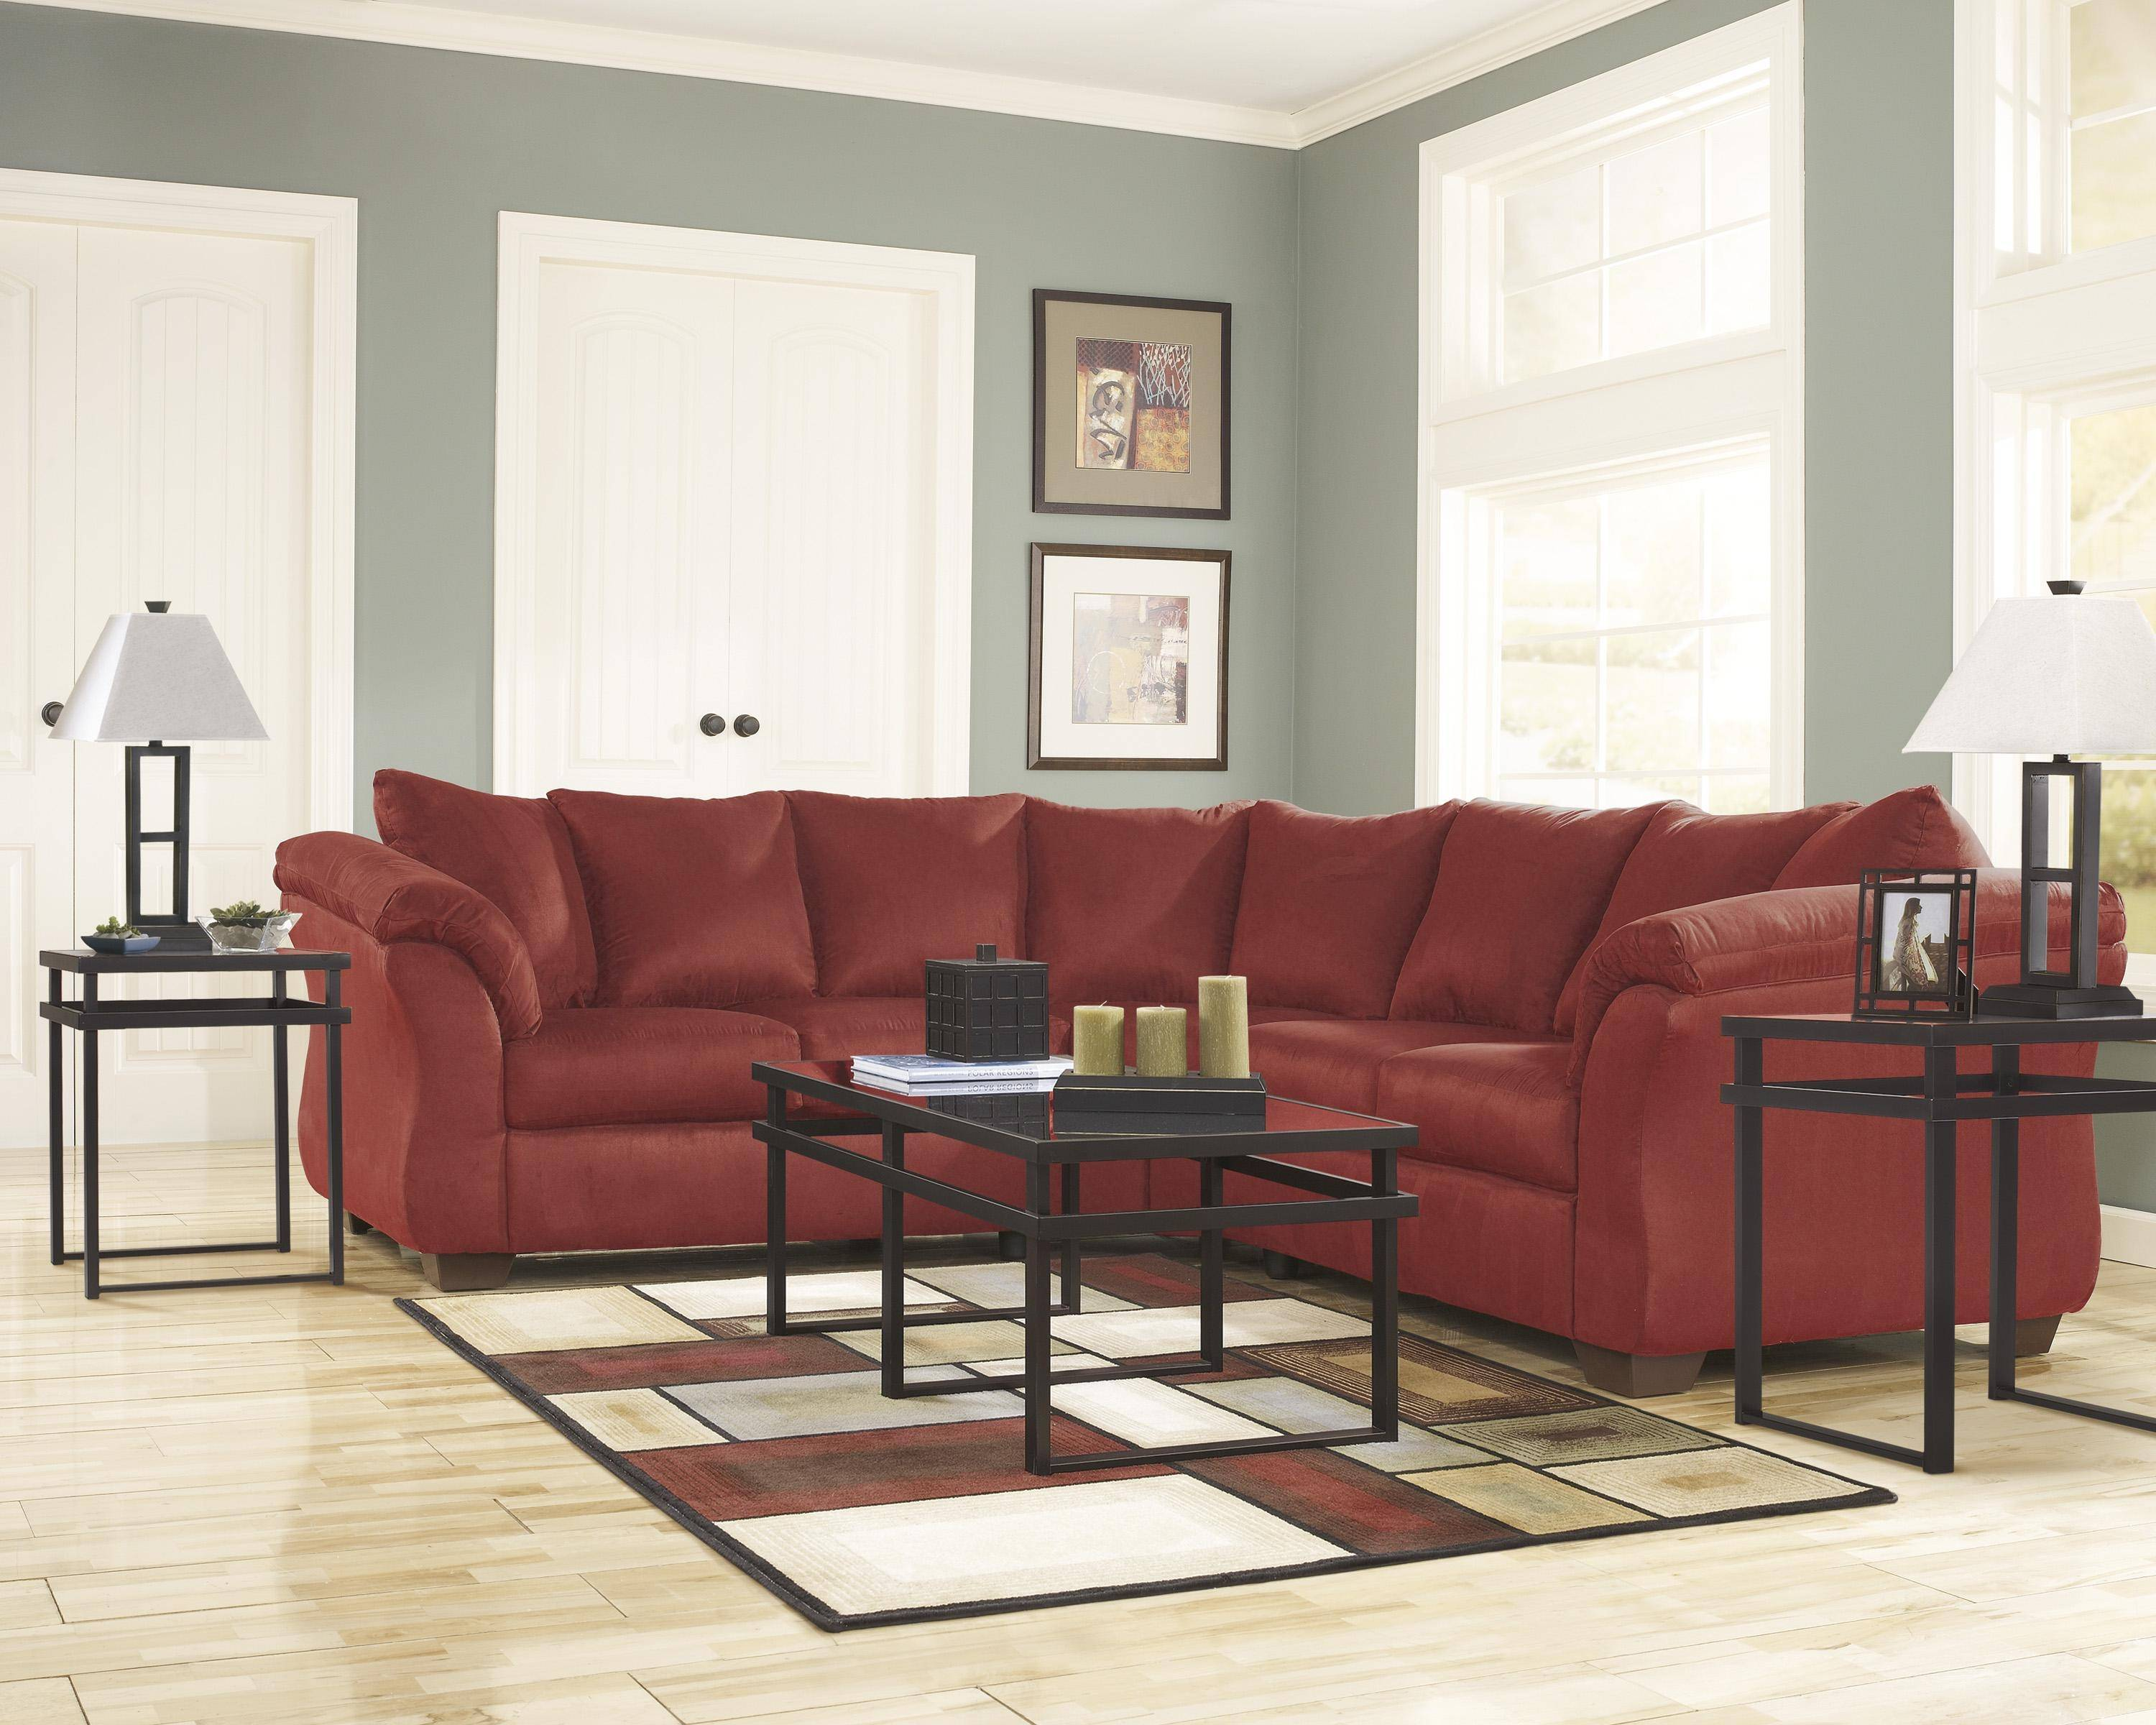 Pleasant Ashley Darcy 2 Piece Sectional In Salsa 75001 55 56 Kit Alphanode Cool Chair Designs And Ideas Alphanodeonline